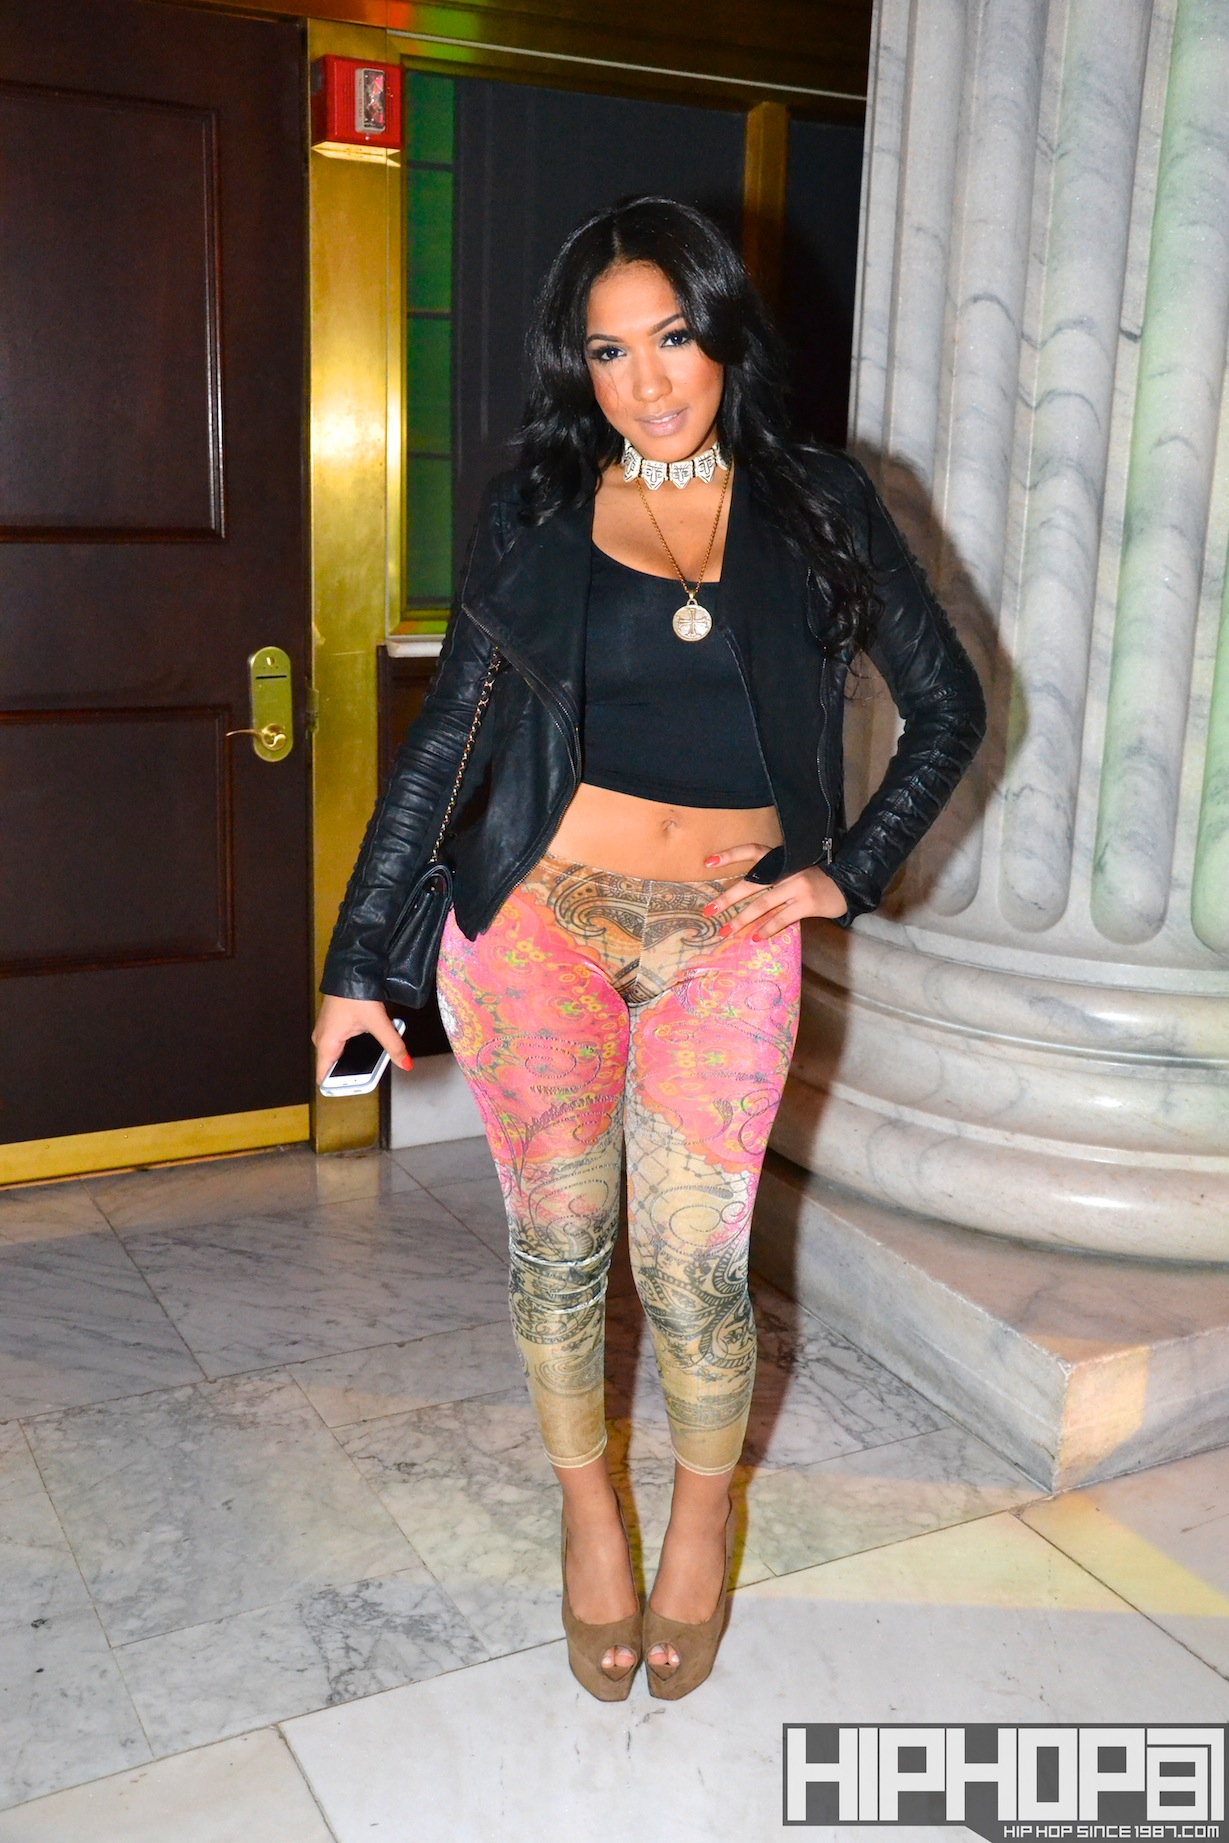 Yaris-Sanchez-3-18-12-3 Yaris Sanchez (@Yaris_Sanchez) Visits Club Onyx In Philly (3/18/12) Photos